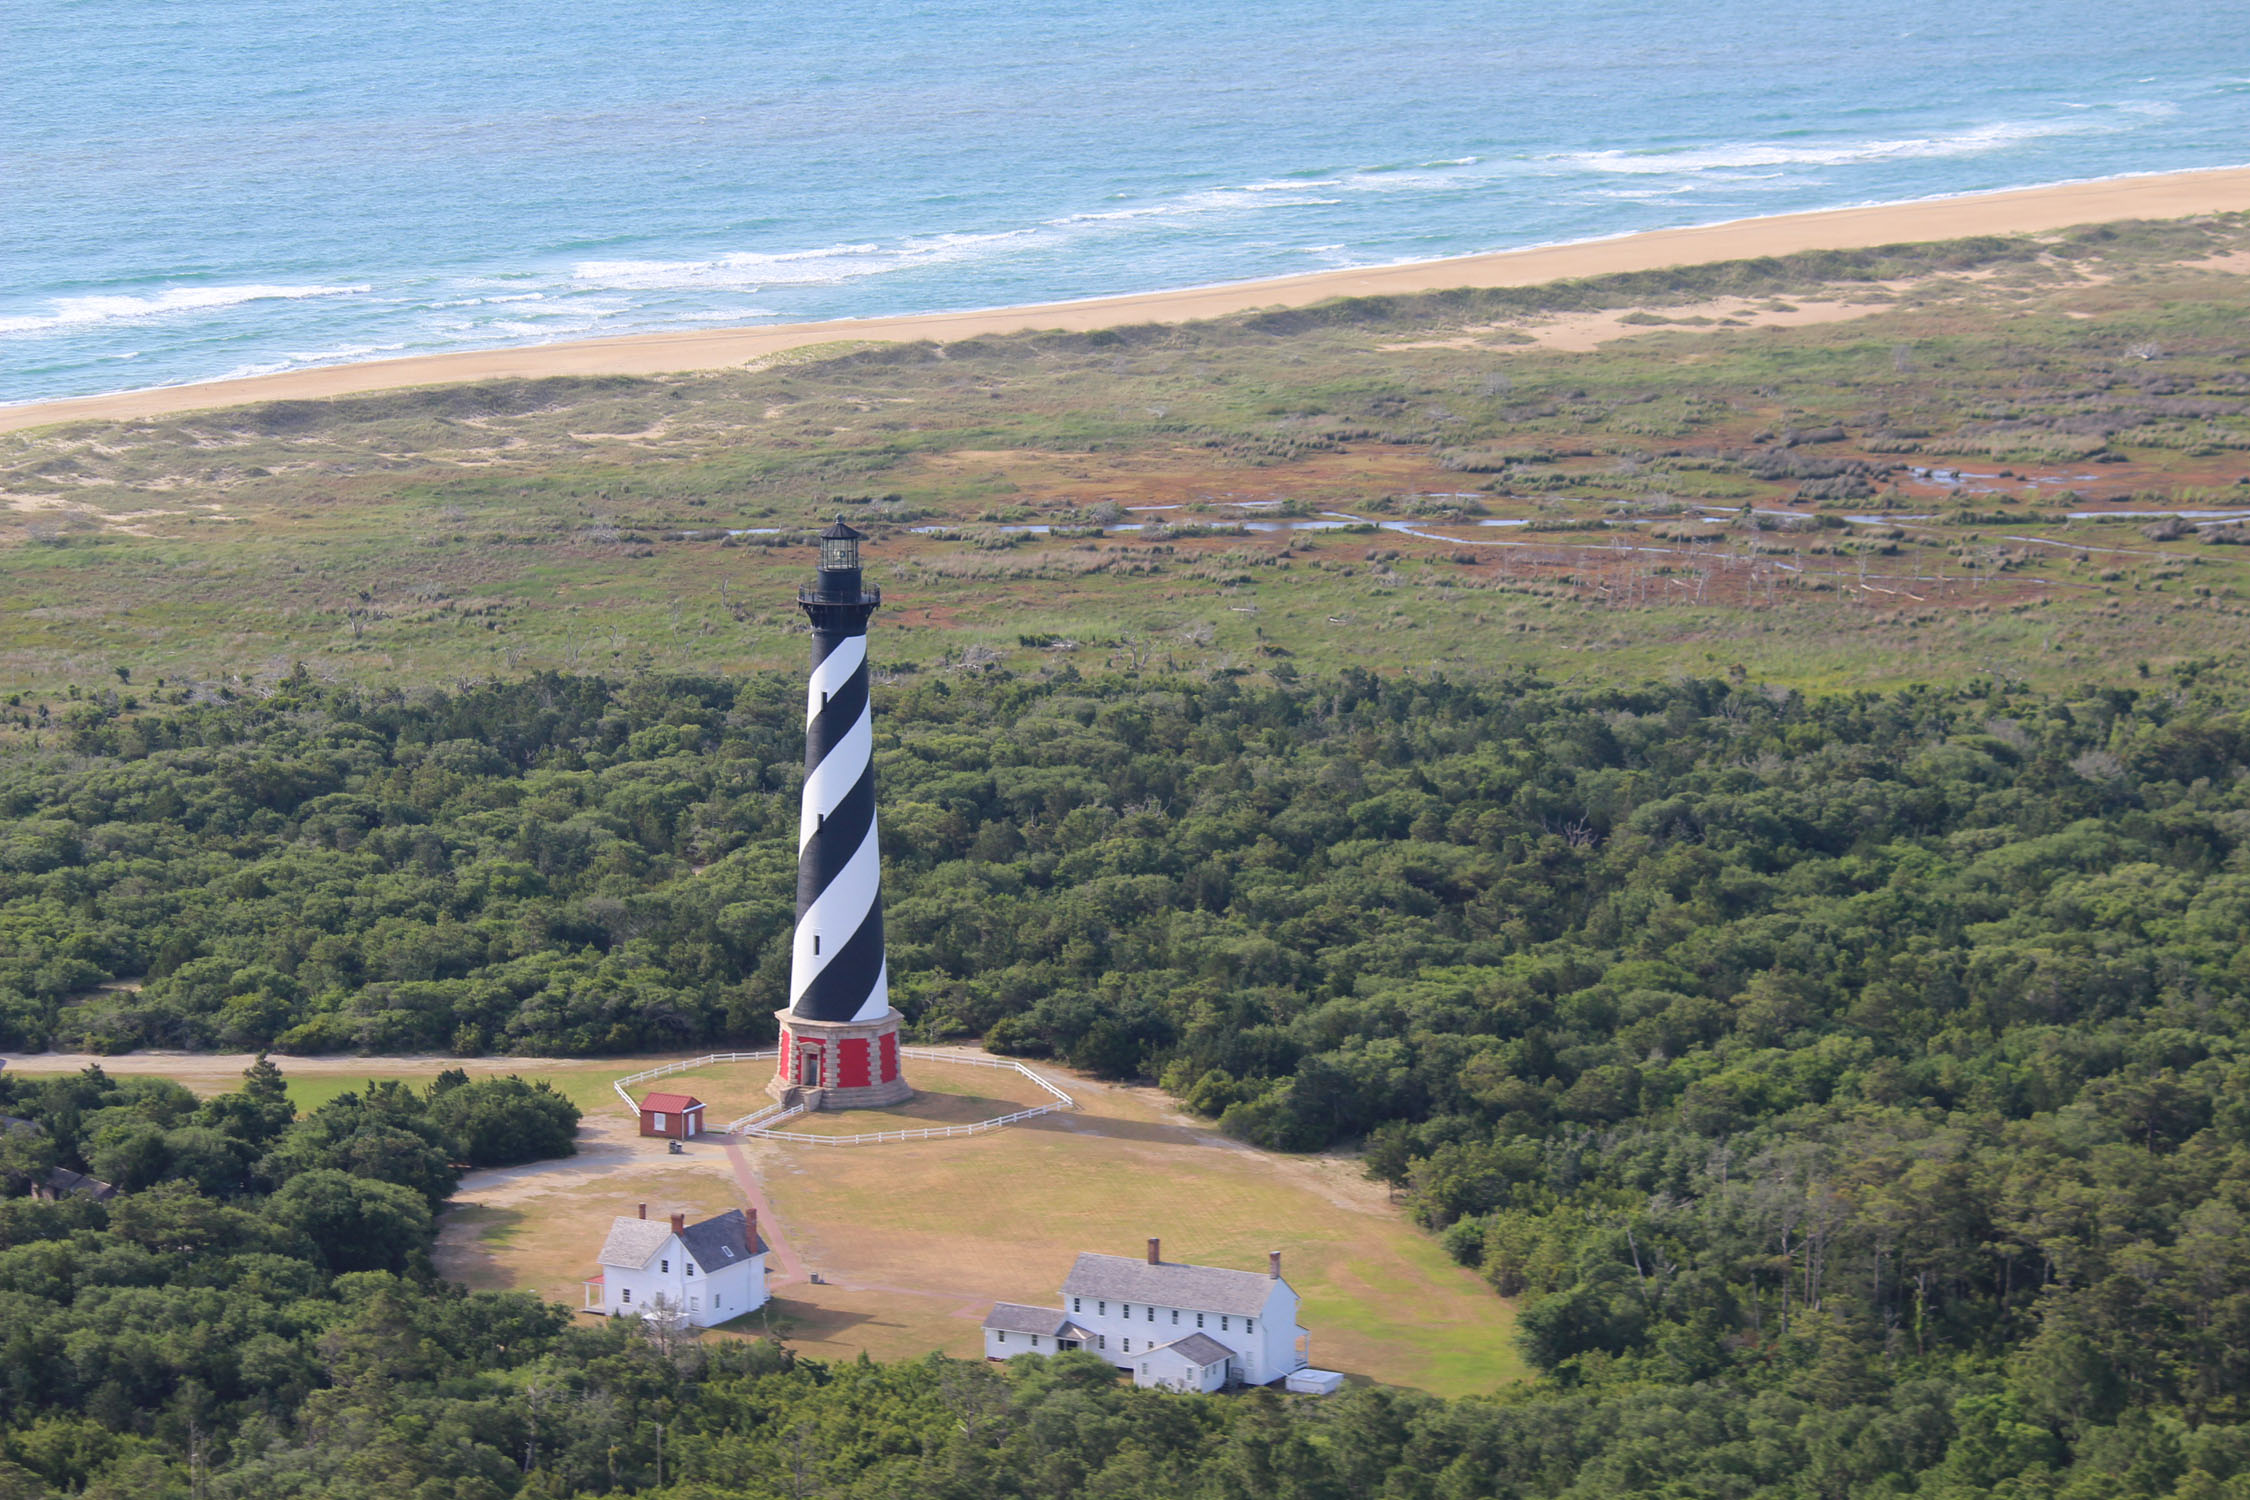 cape hatteras hindu singles Horseback riding on the cape hatteras national seashore our horseback rides are done on the southern most part of hatteras island single rider $95 hr.